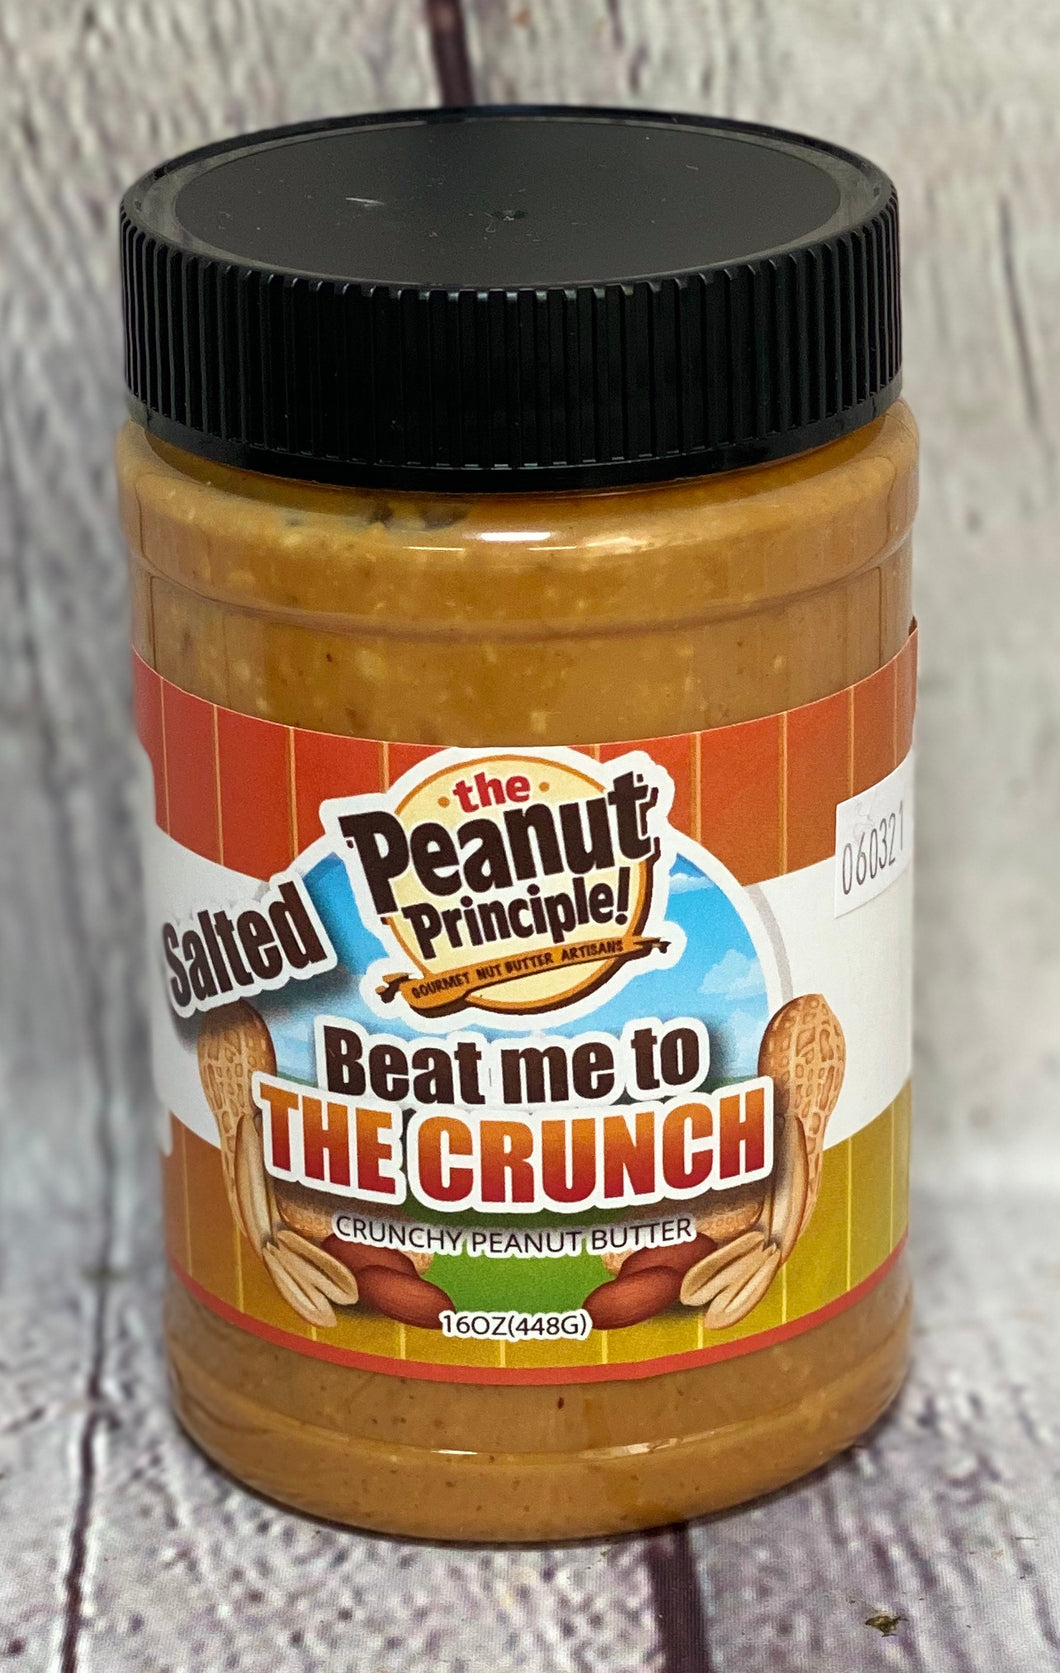 Peanut Butter - Beat me to the Crunch - The Peanut Principle